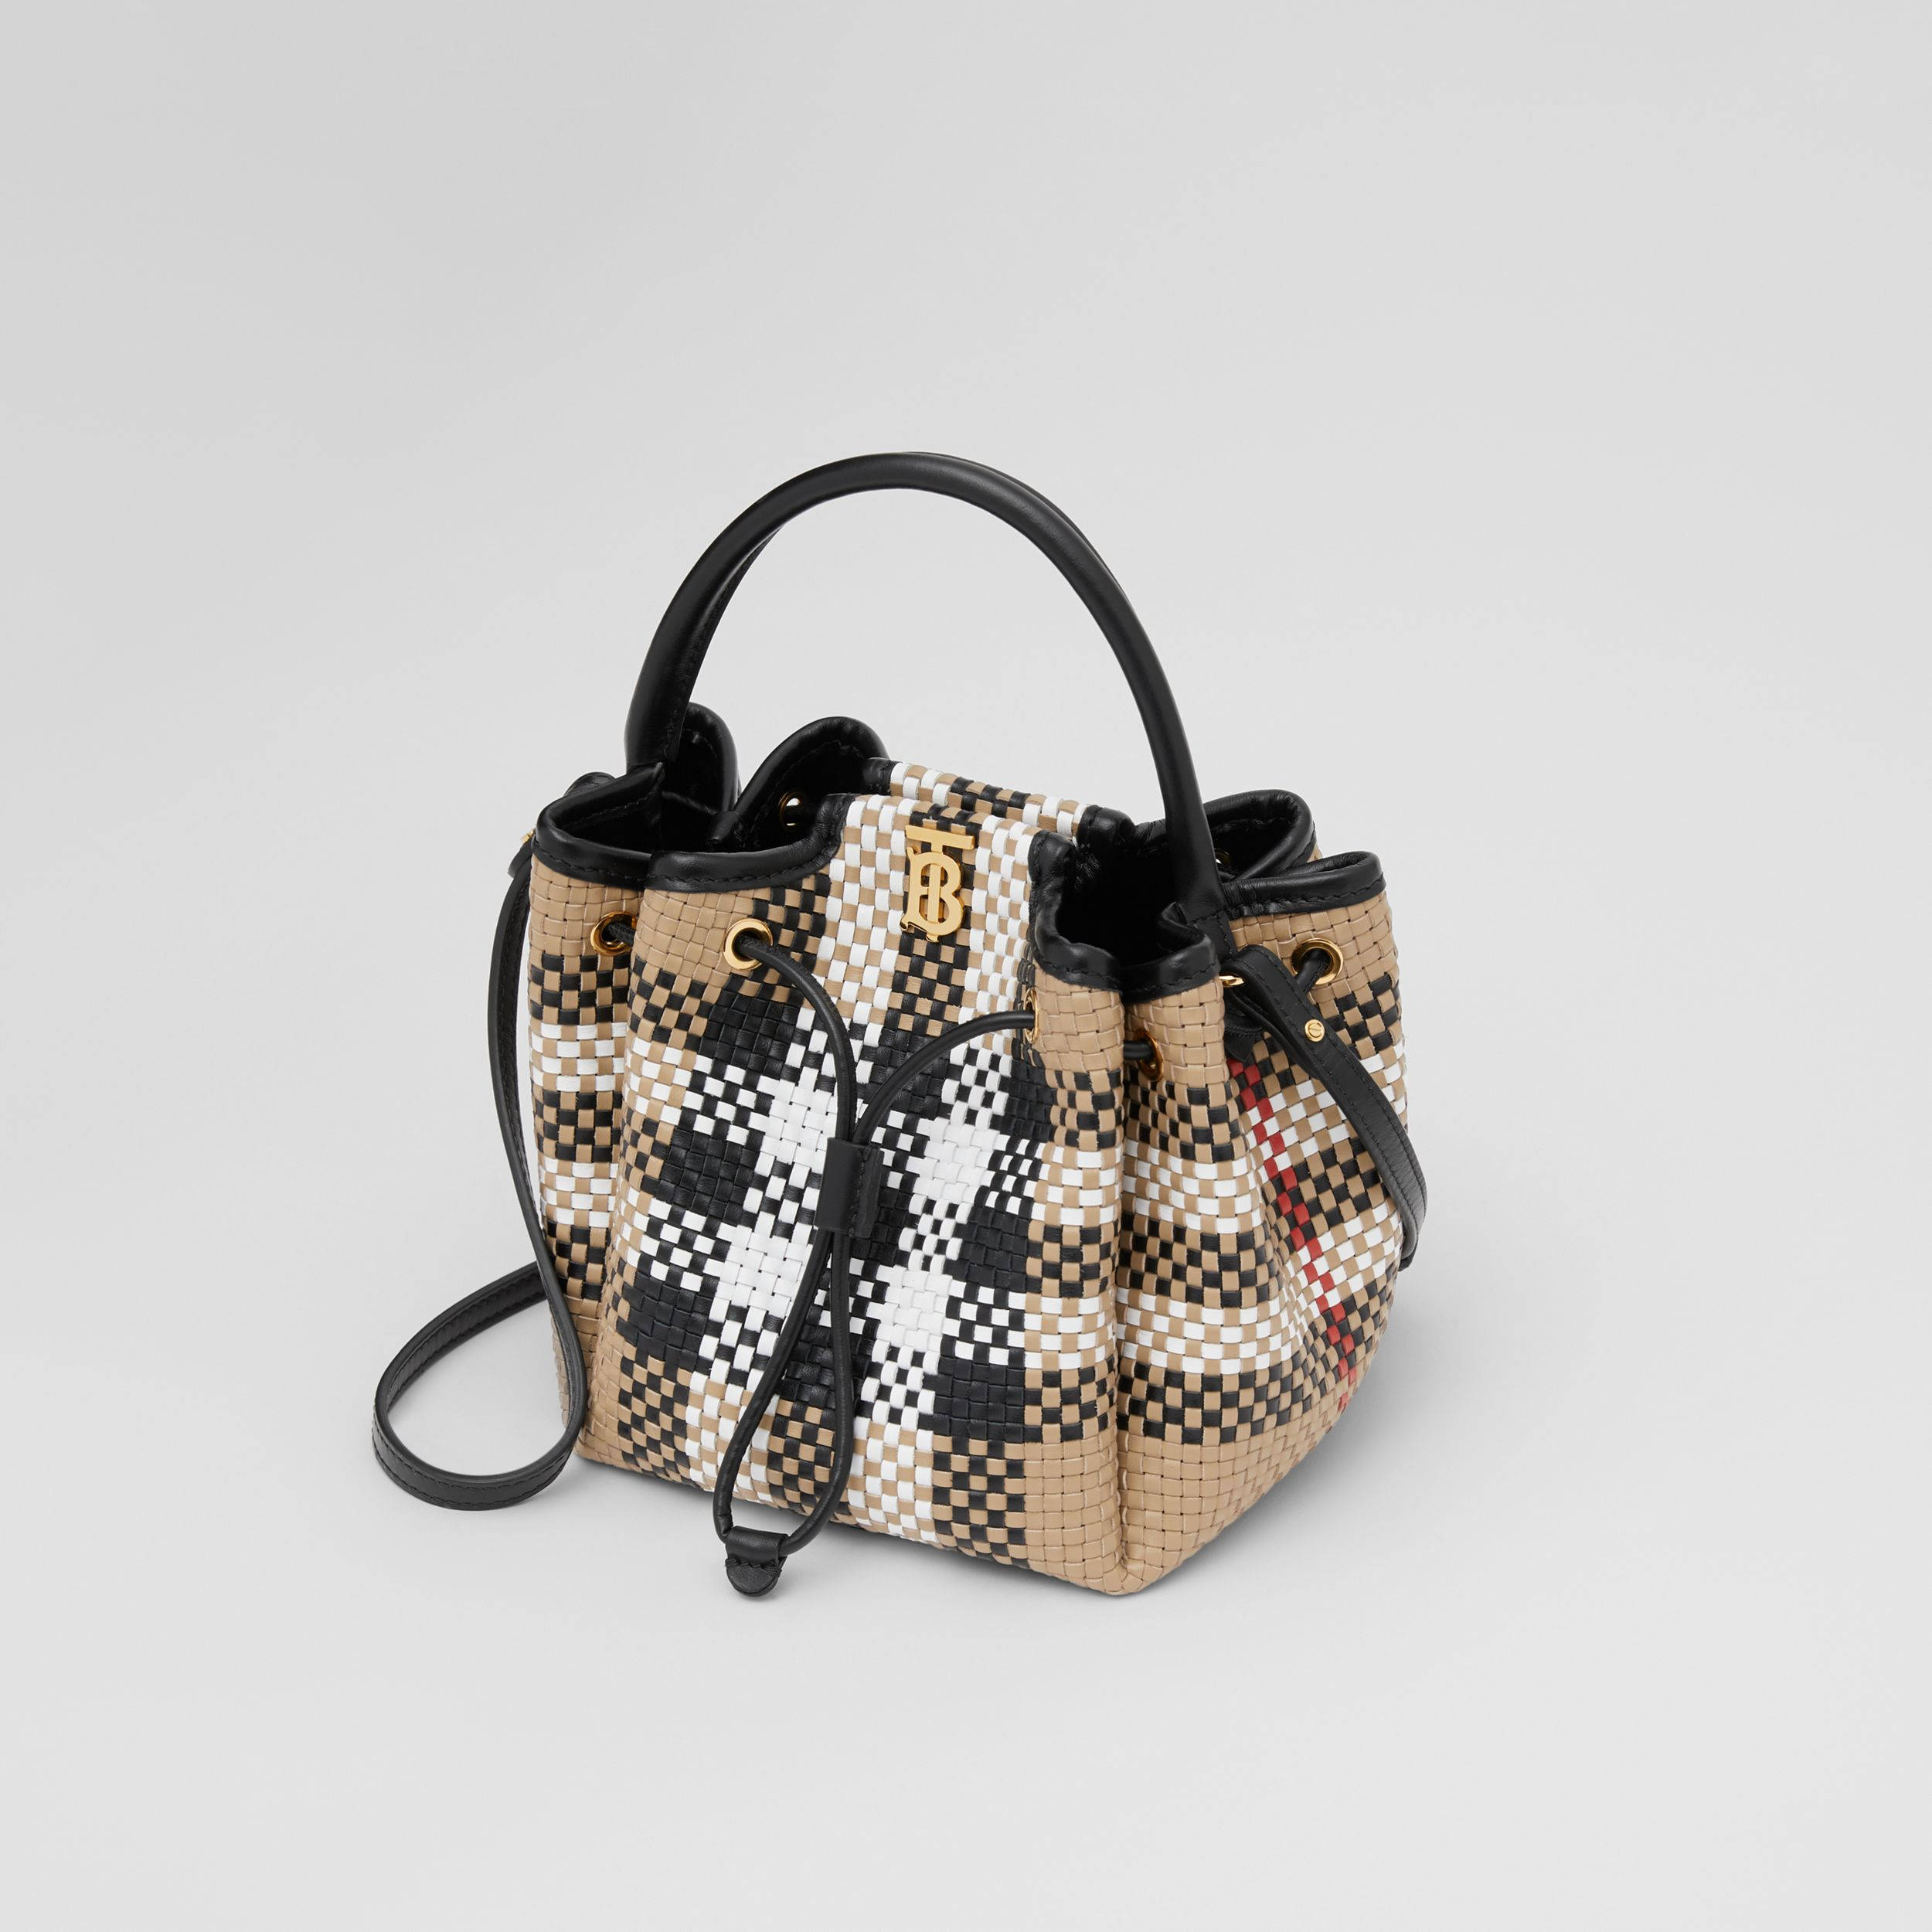 Monogram Motif Latticed Leather Bucket Bag in Archive Beige - Women | Burberry - 4